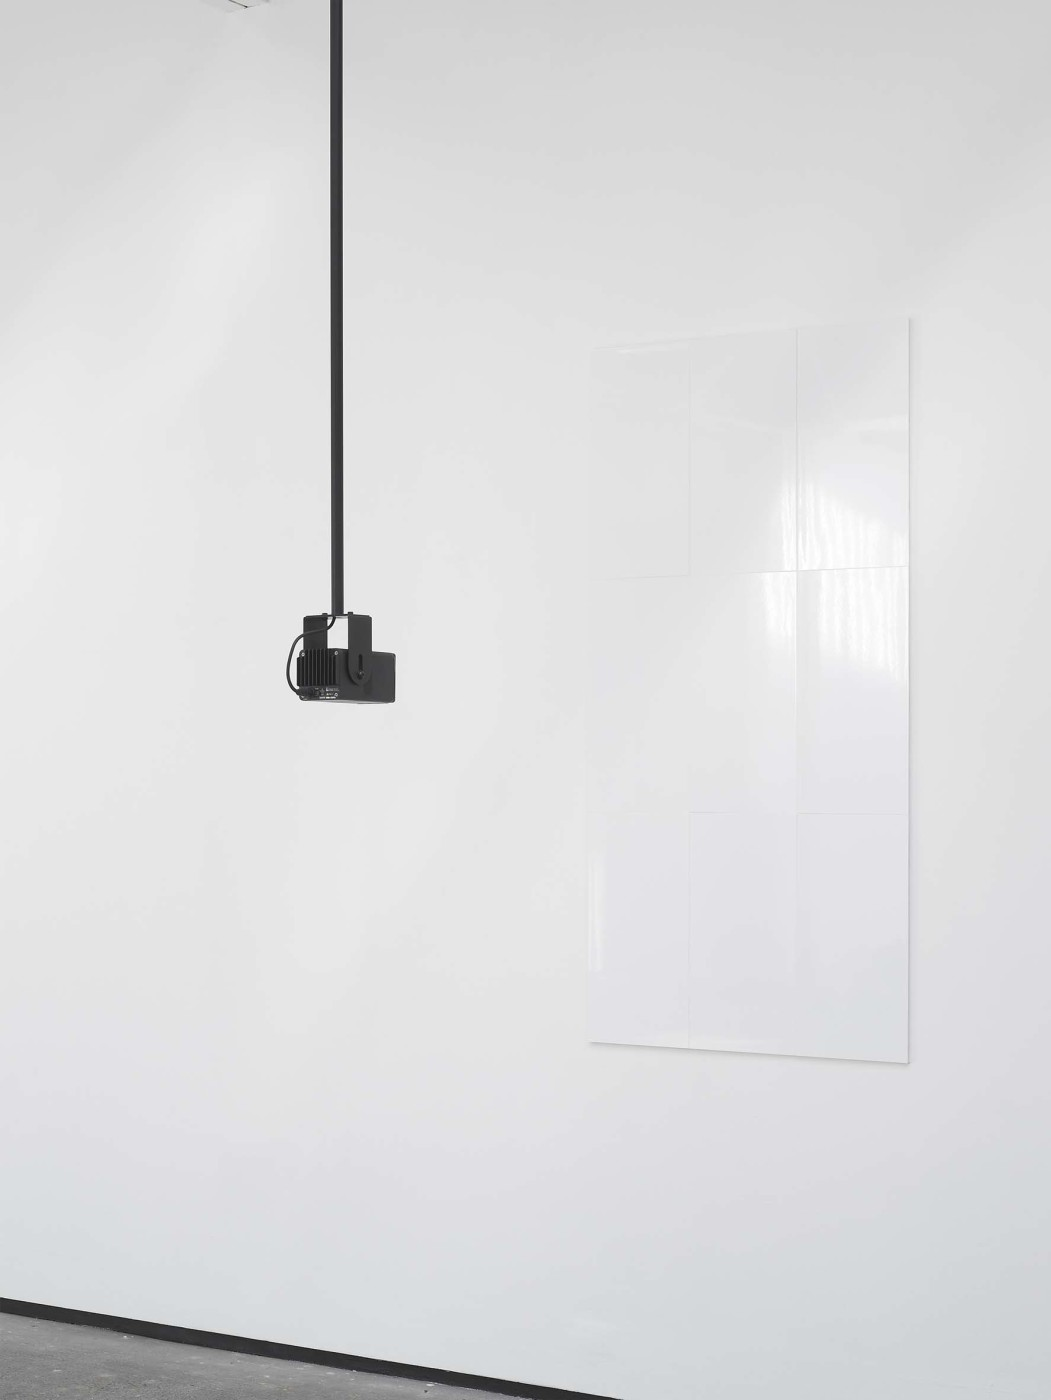 "<div class=""title""><em>Untitled</em>, 2010</div><div class=""medium"">1 channel computer generated sound, ceramic tiles, directional loudspeaker system, powder coated steek ceiling mount</div><div class=""dimensions"">dimensions variable</div>"